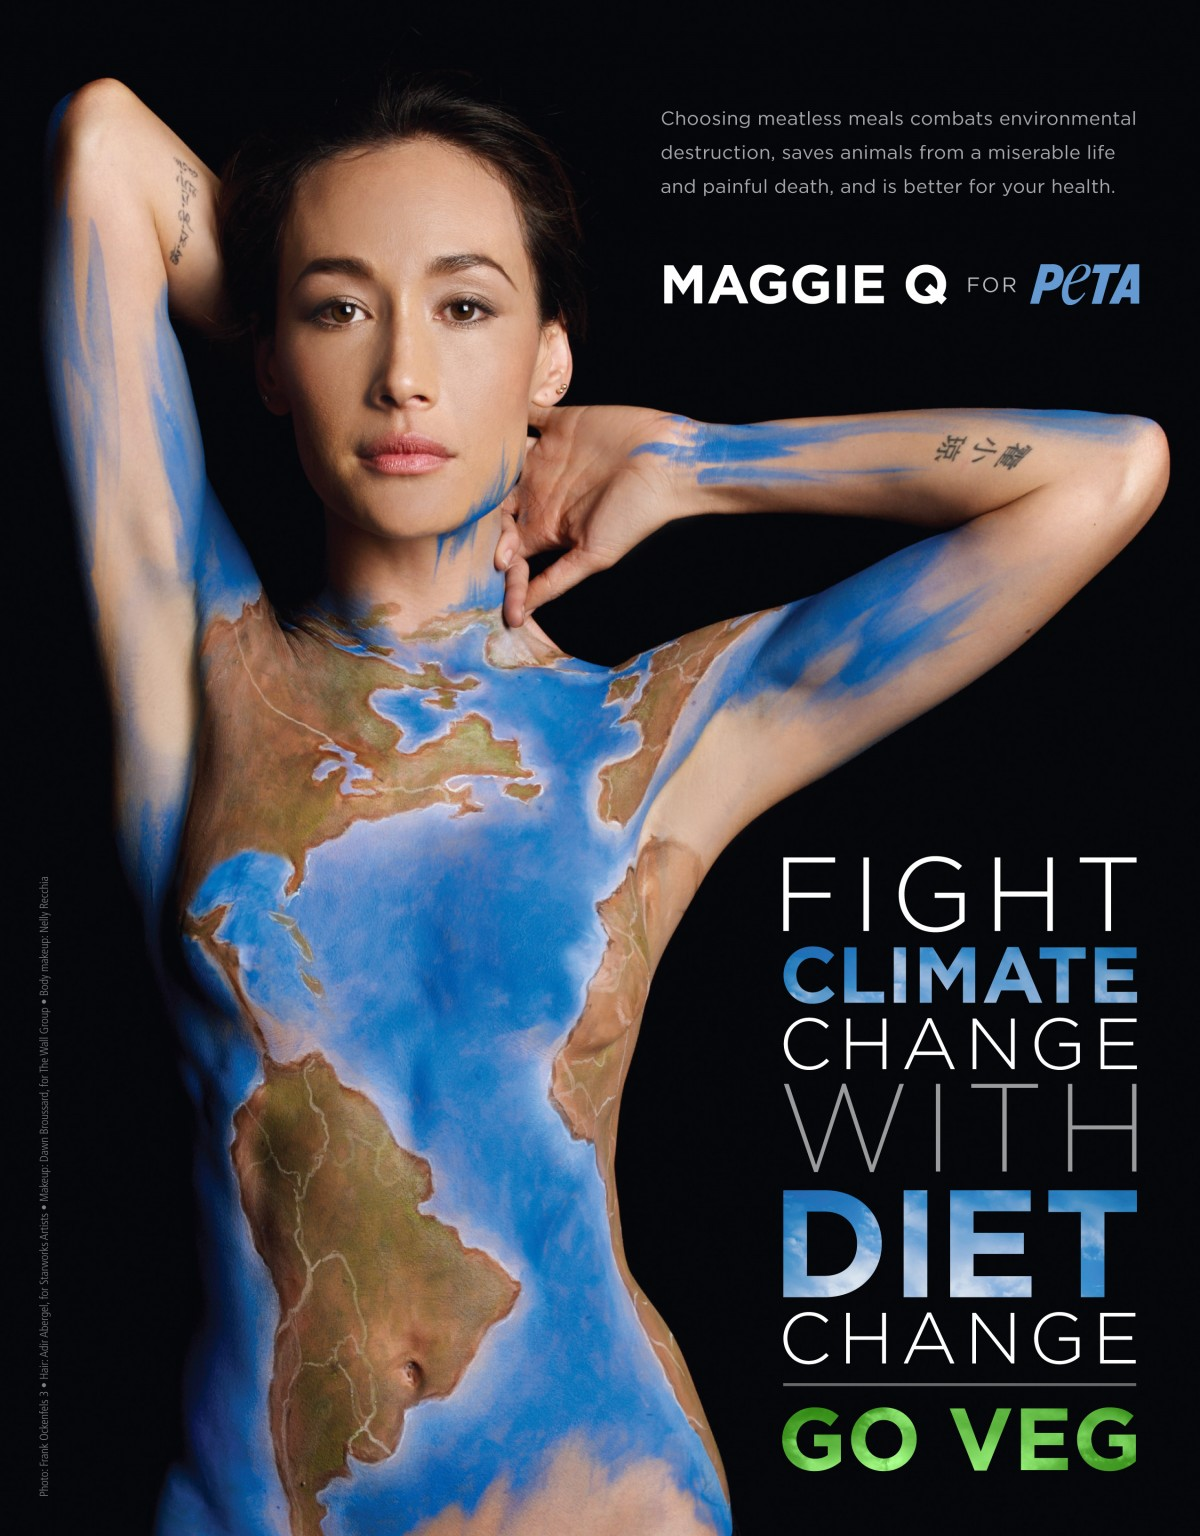 Maggie-Q-Save-the-Planet-300